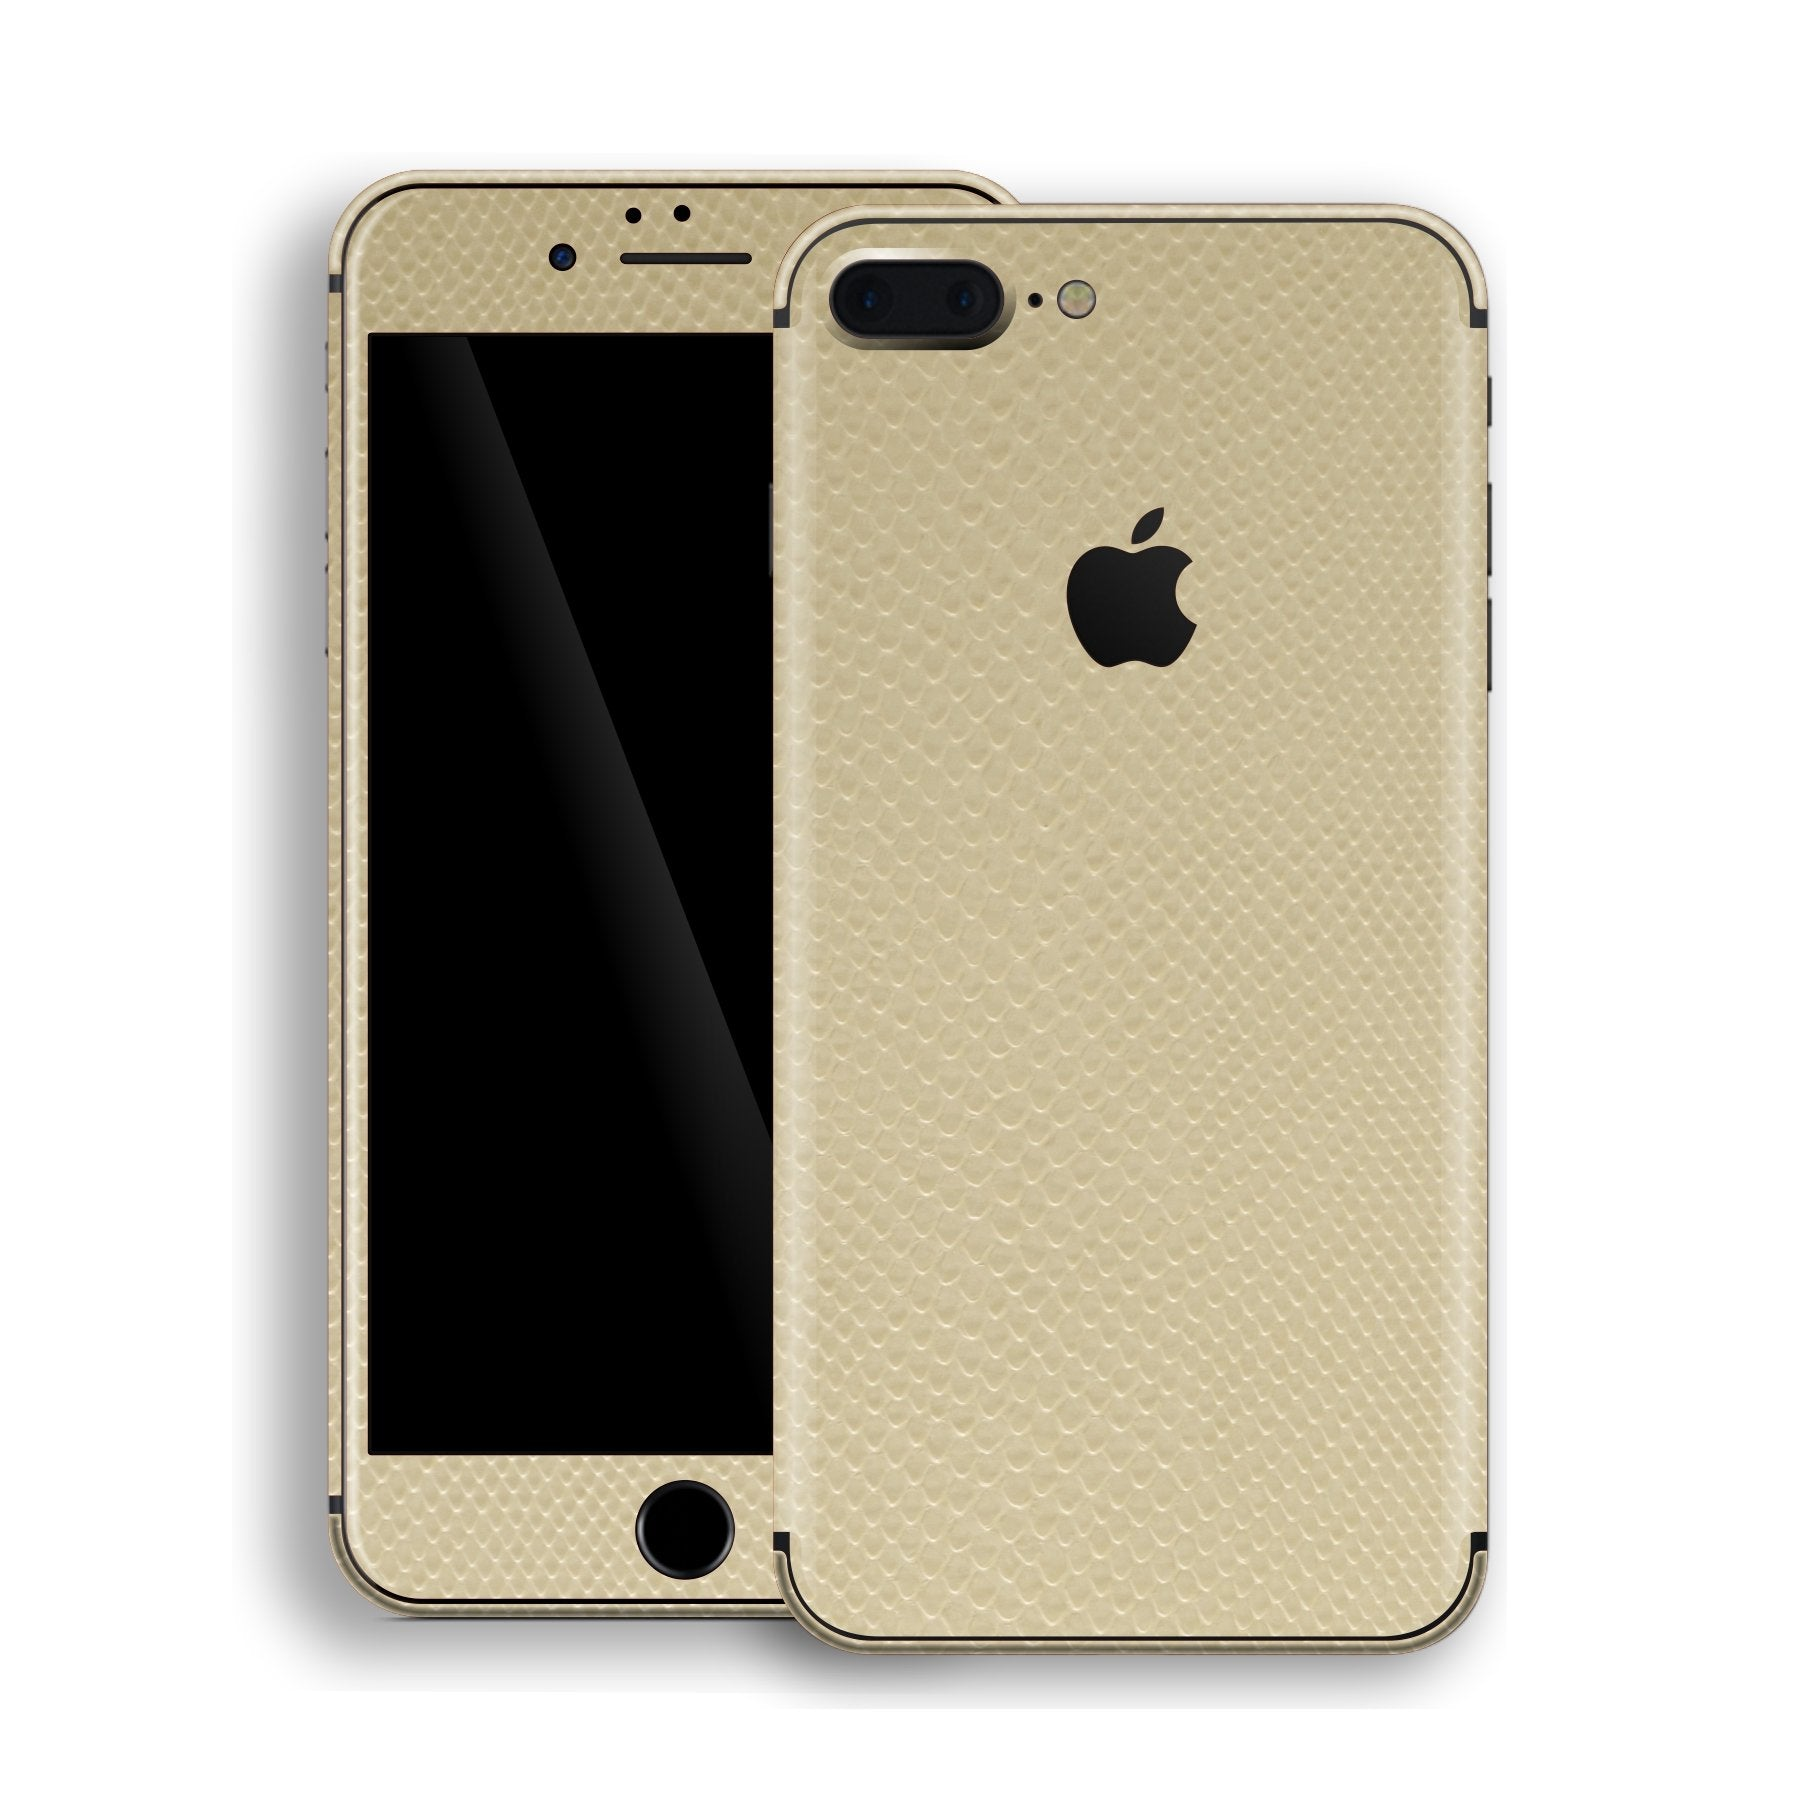 iPhone 8 Plus Beige Mamba Snake Leather Skin, Decal, Wrap, Protector, Cover by EasySkinz | EasySkinz.com